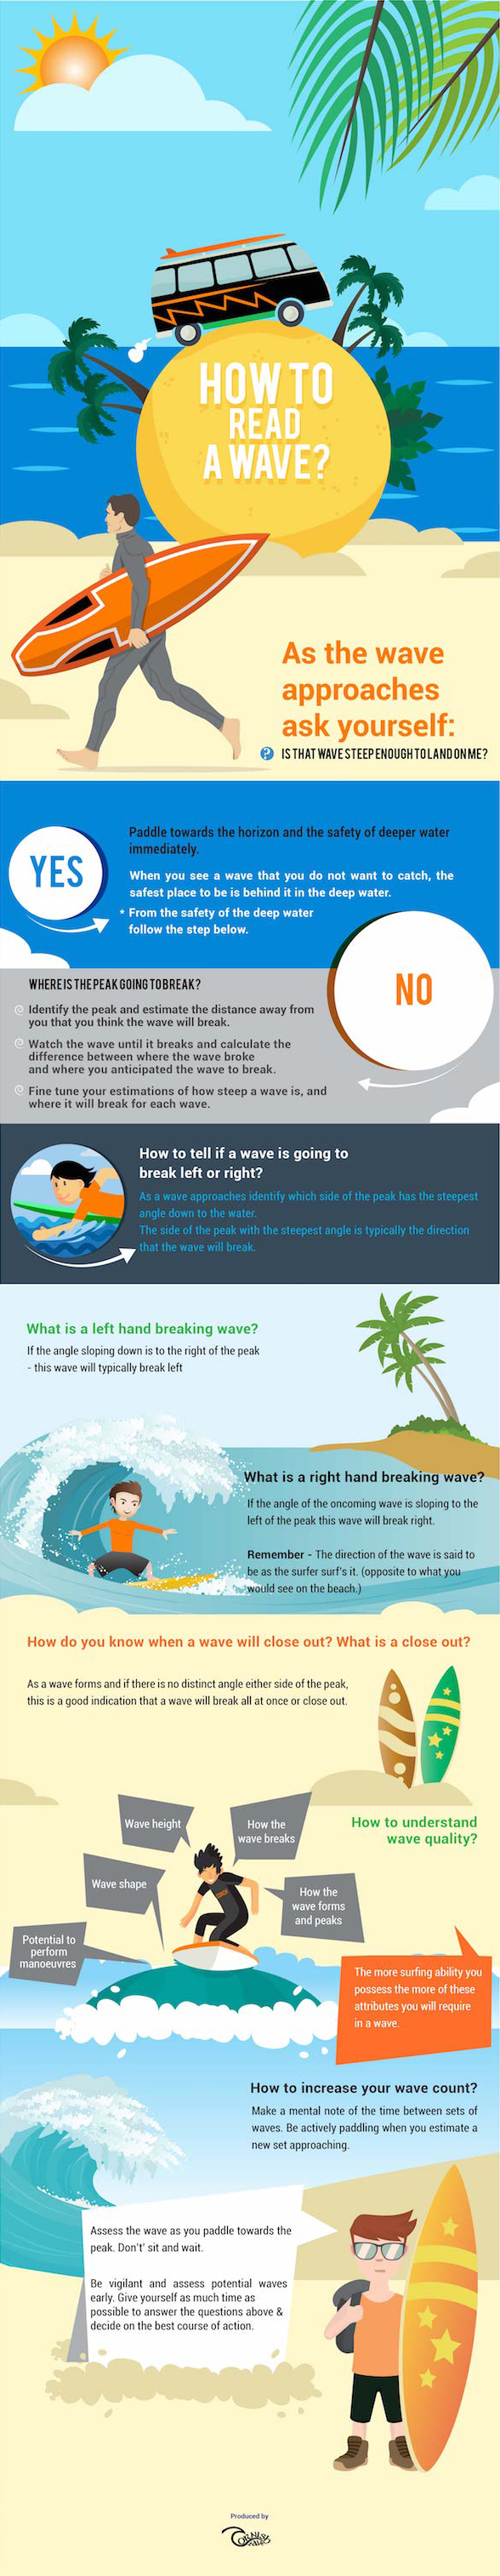 How To Read A Wave Infographic - Surf School Newquay Cornish Wave